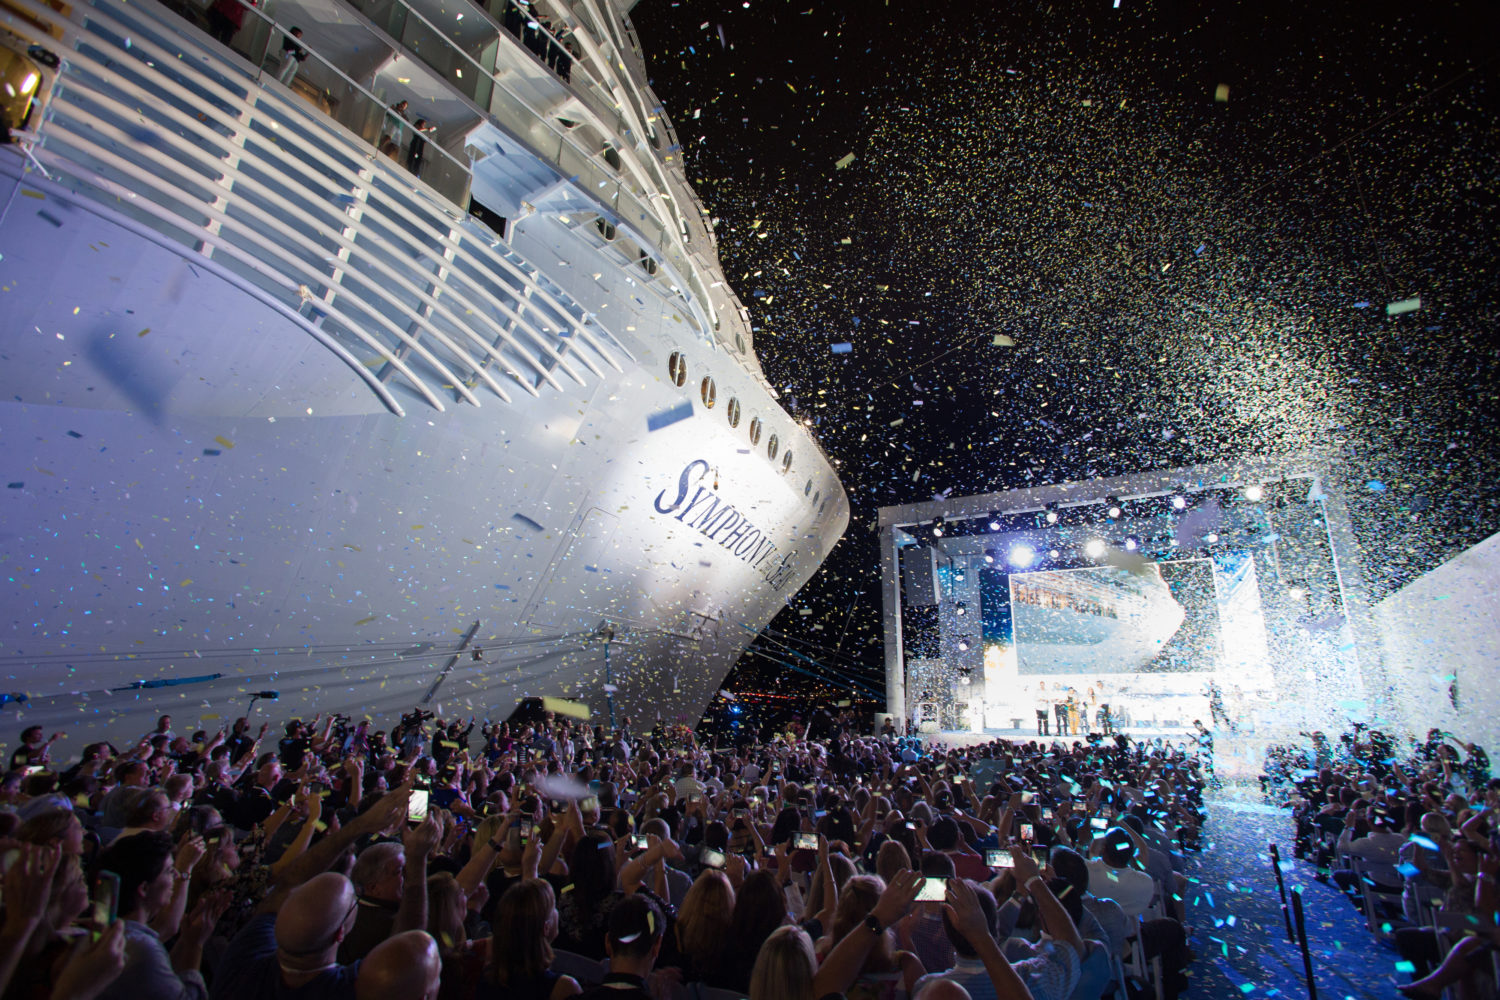 Royal Caribbean's Newest Cruise Ship Christened in Miami